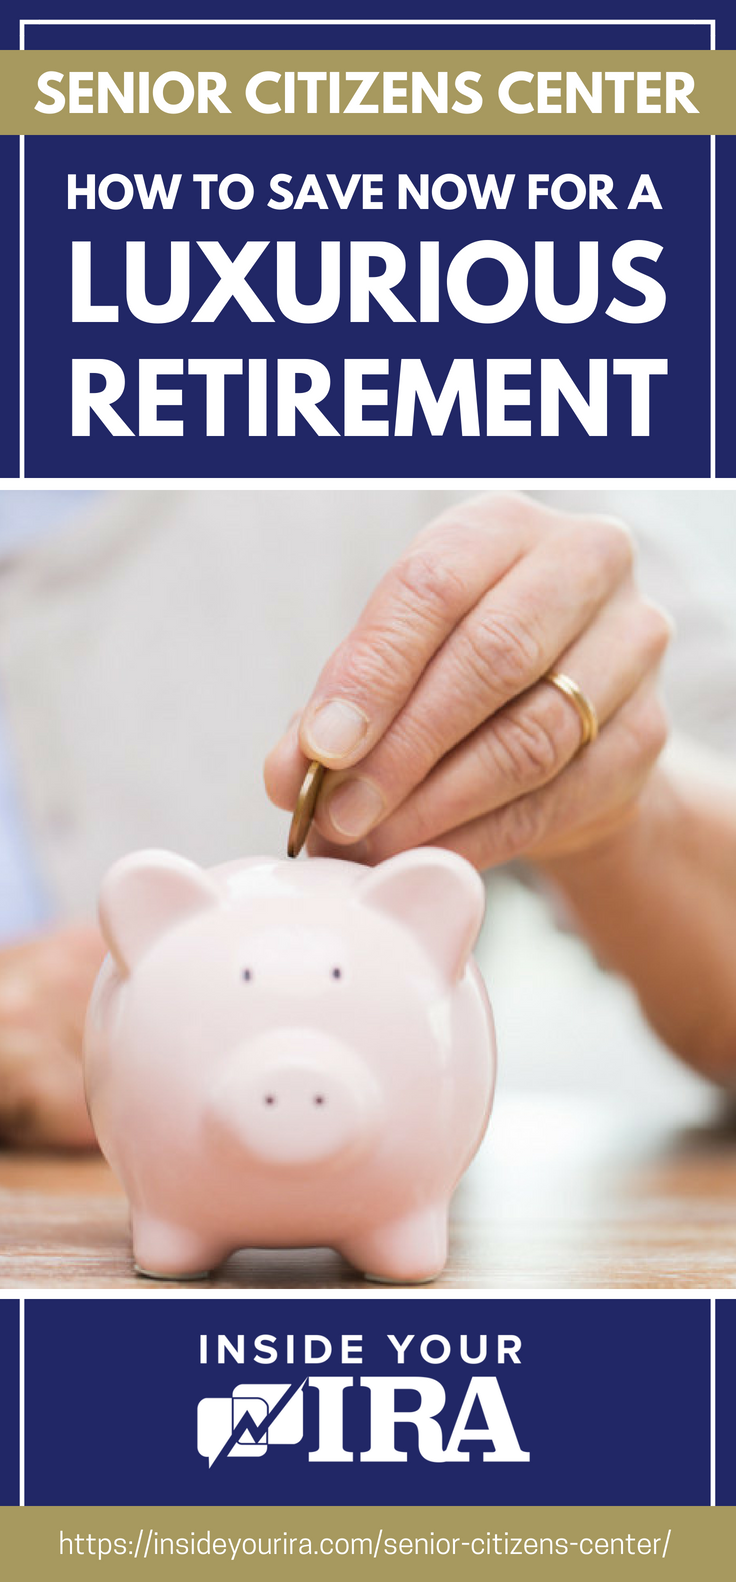 Senior Citizens Center | How To Save NOW For A Luxurious Retirement https://insideyourira.com/senior-citizens-center/